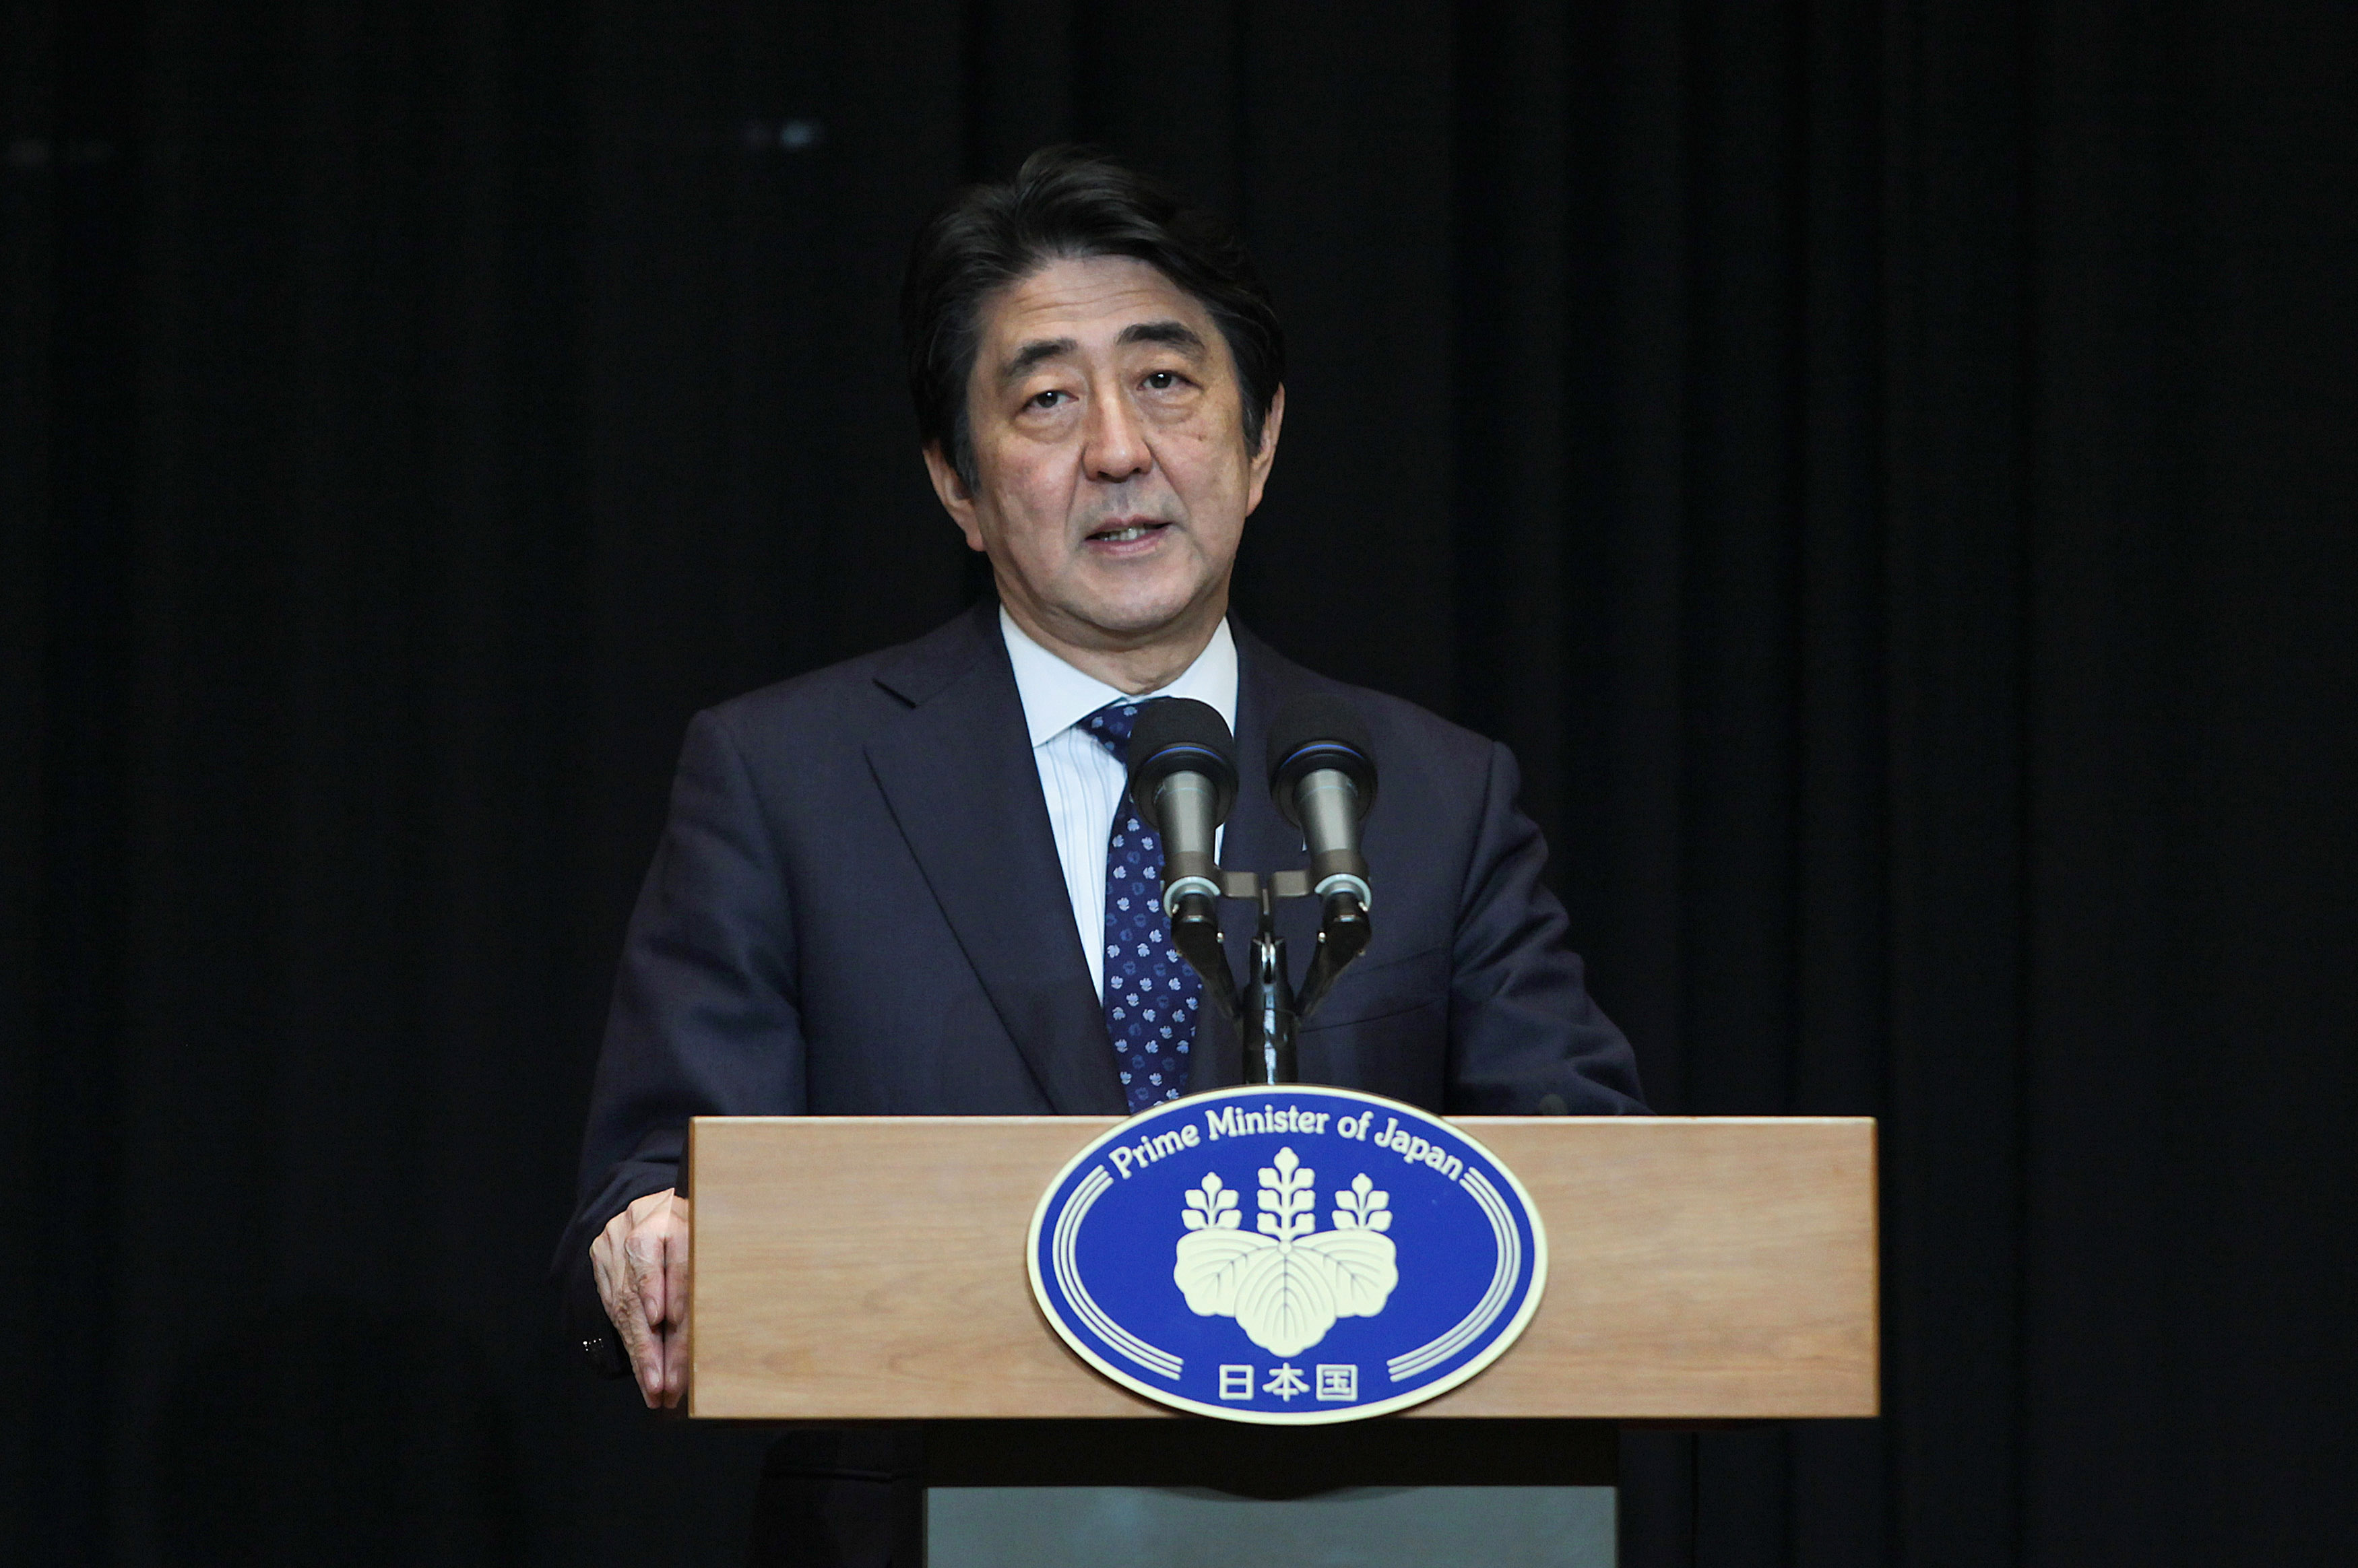 Japanese Prime Minister Shinzo Abe speak to media during a news conference on November 22, 2015 in Kuala Lumpur, Malaysia.